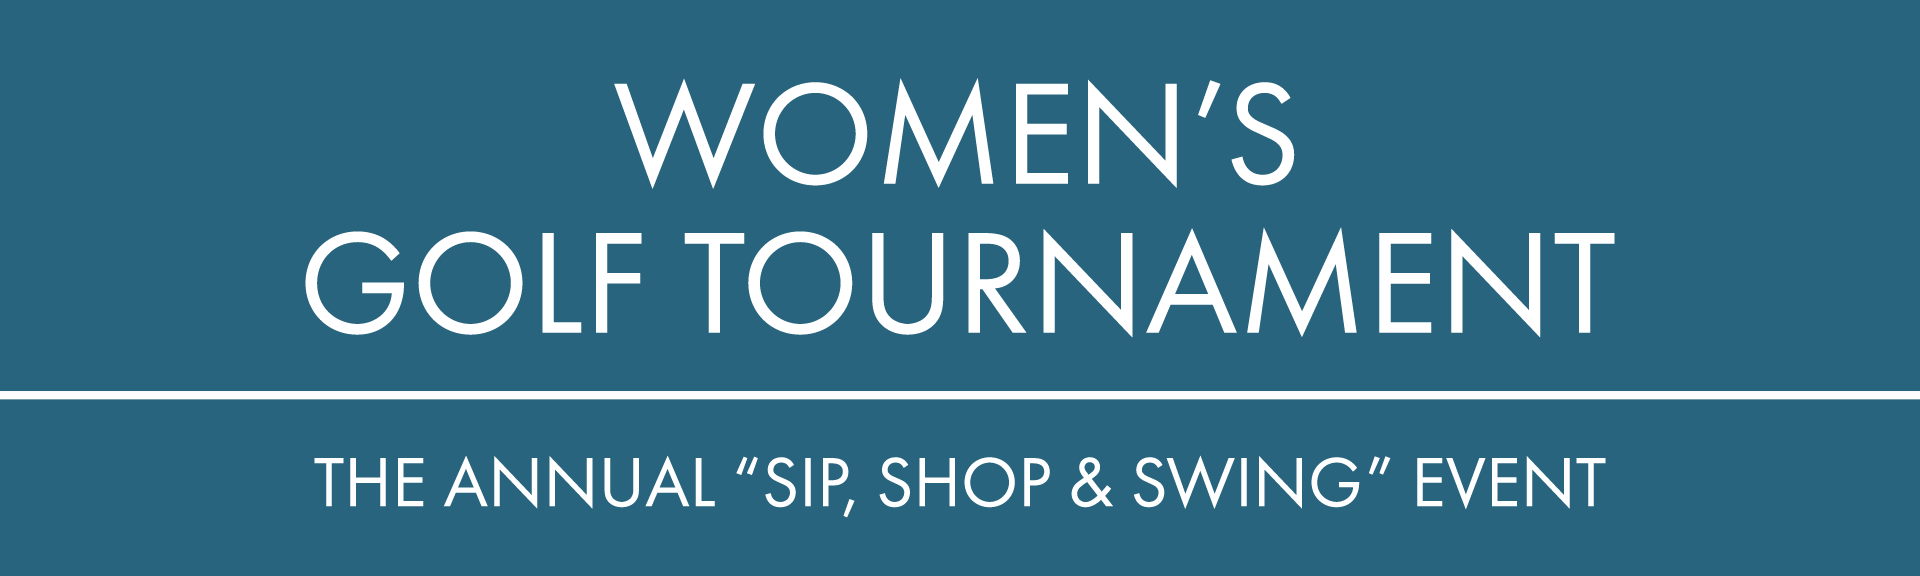 women's golf tournament program page header